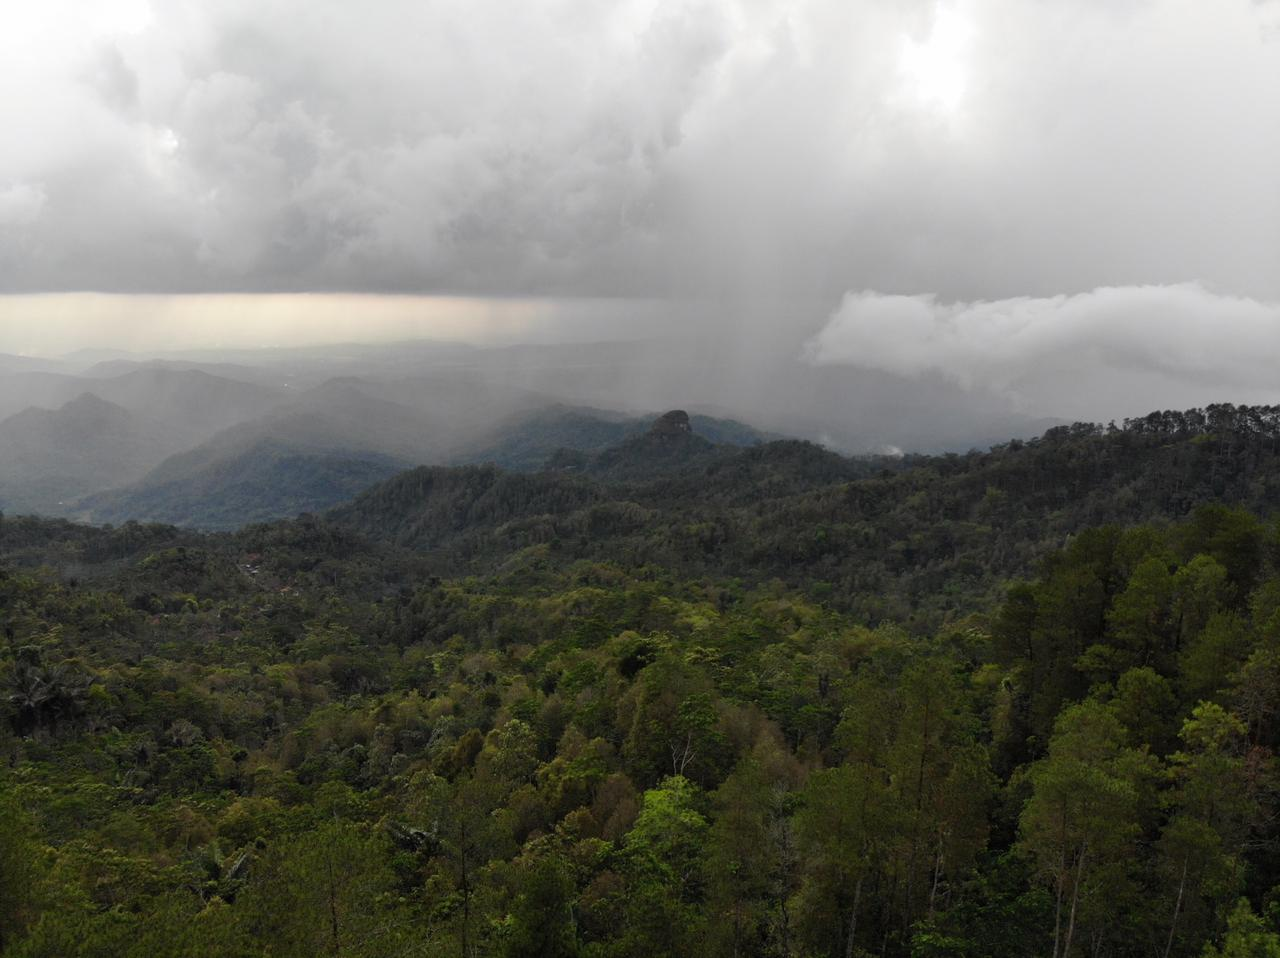 The view from the top of Mount Kunir